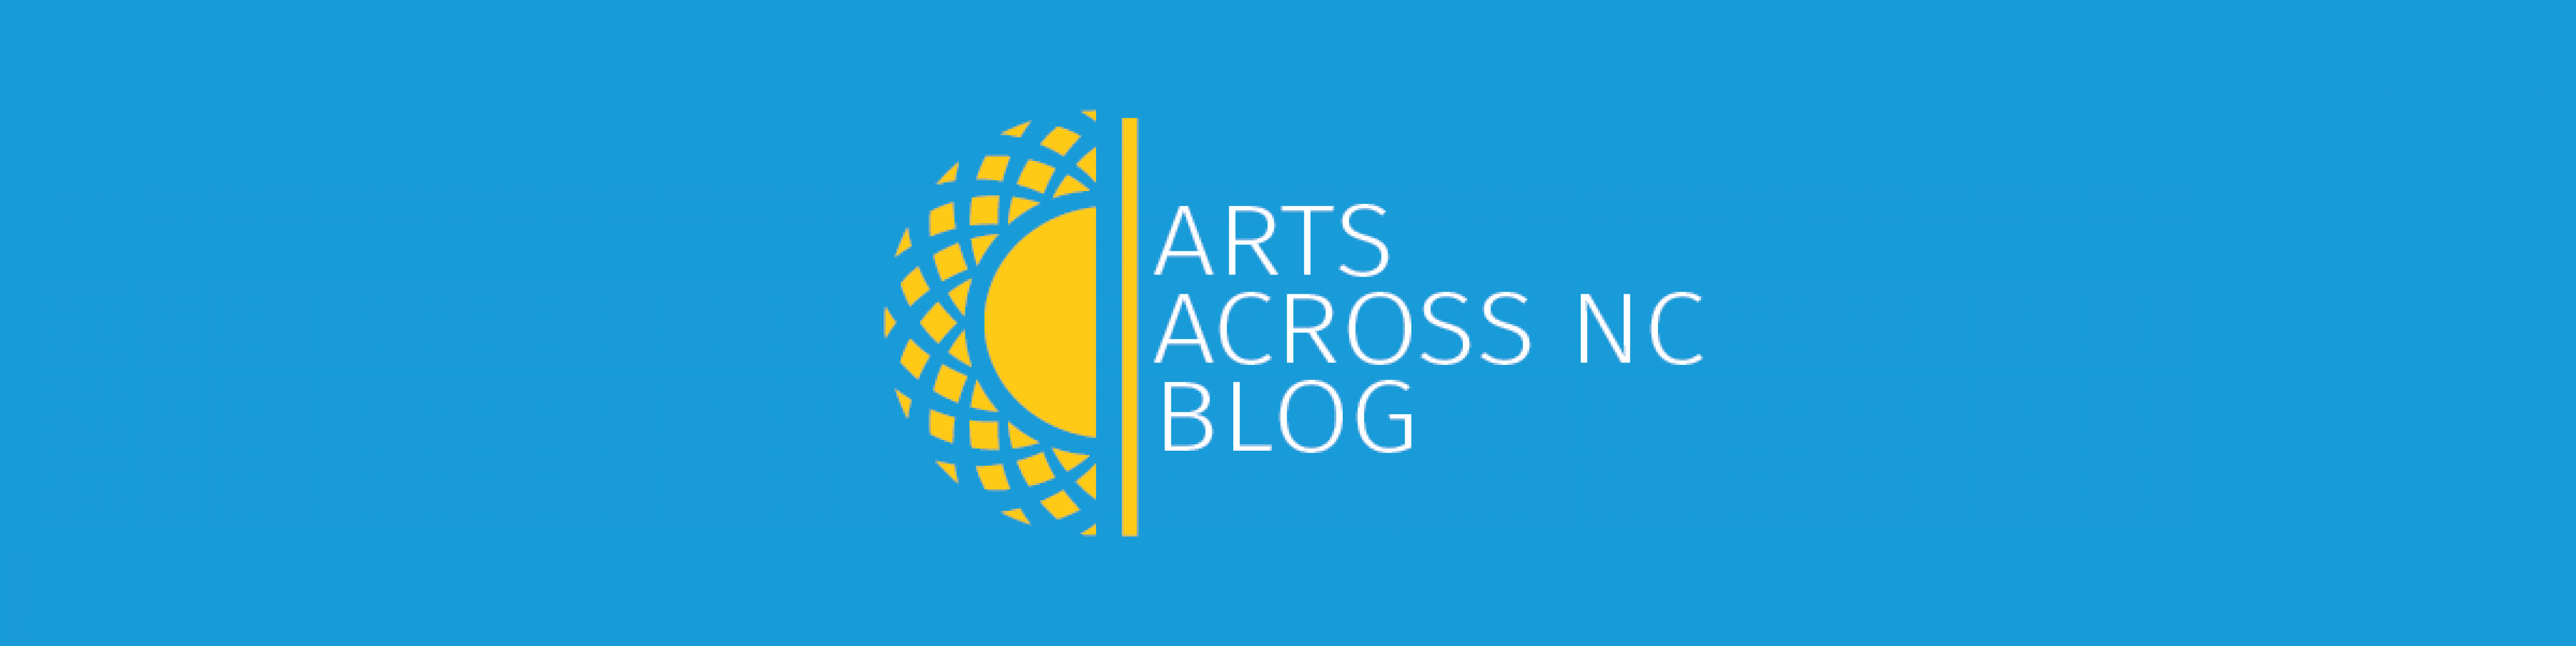 Arts Across NC Blog